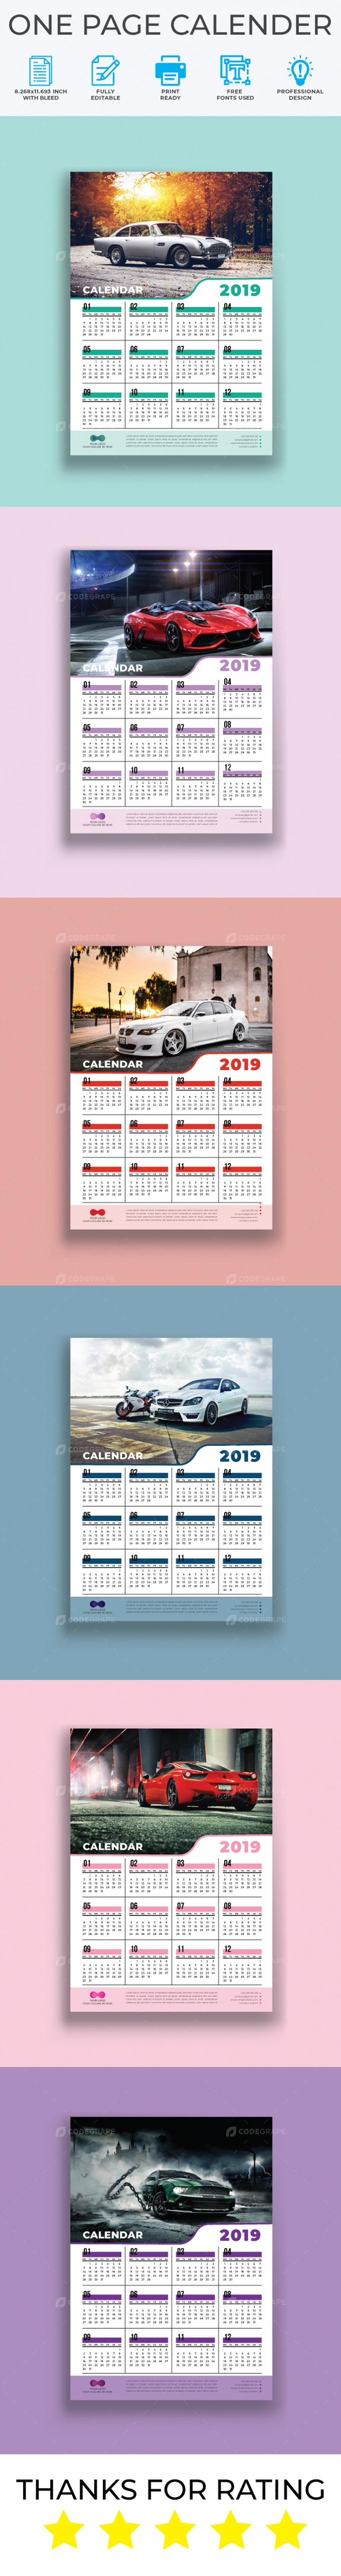 One Page Calendar Template